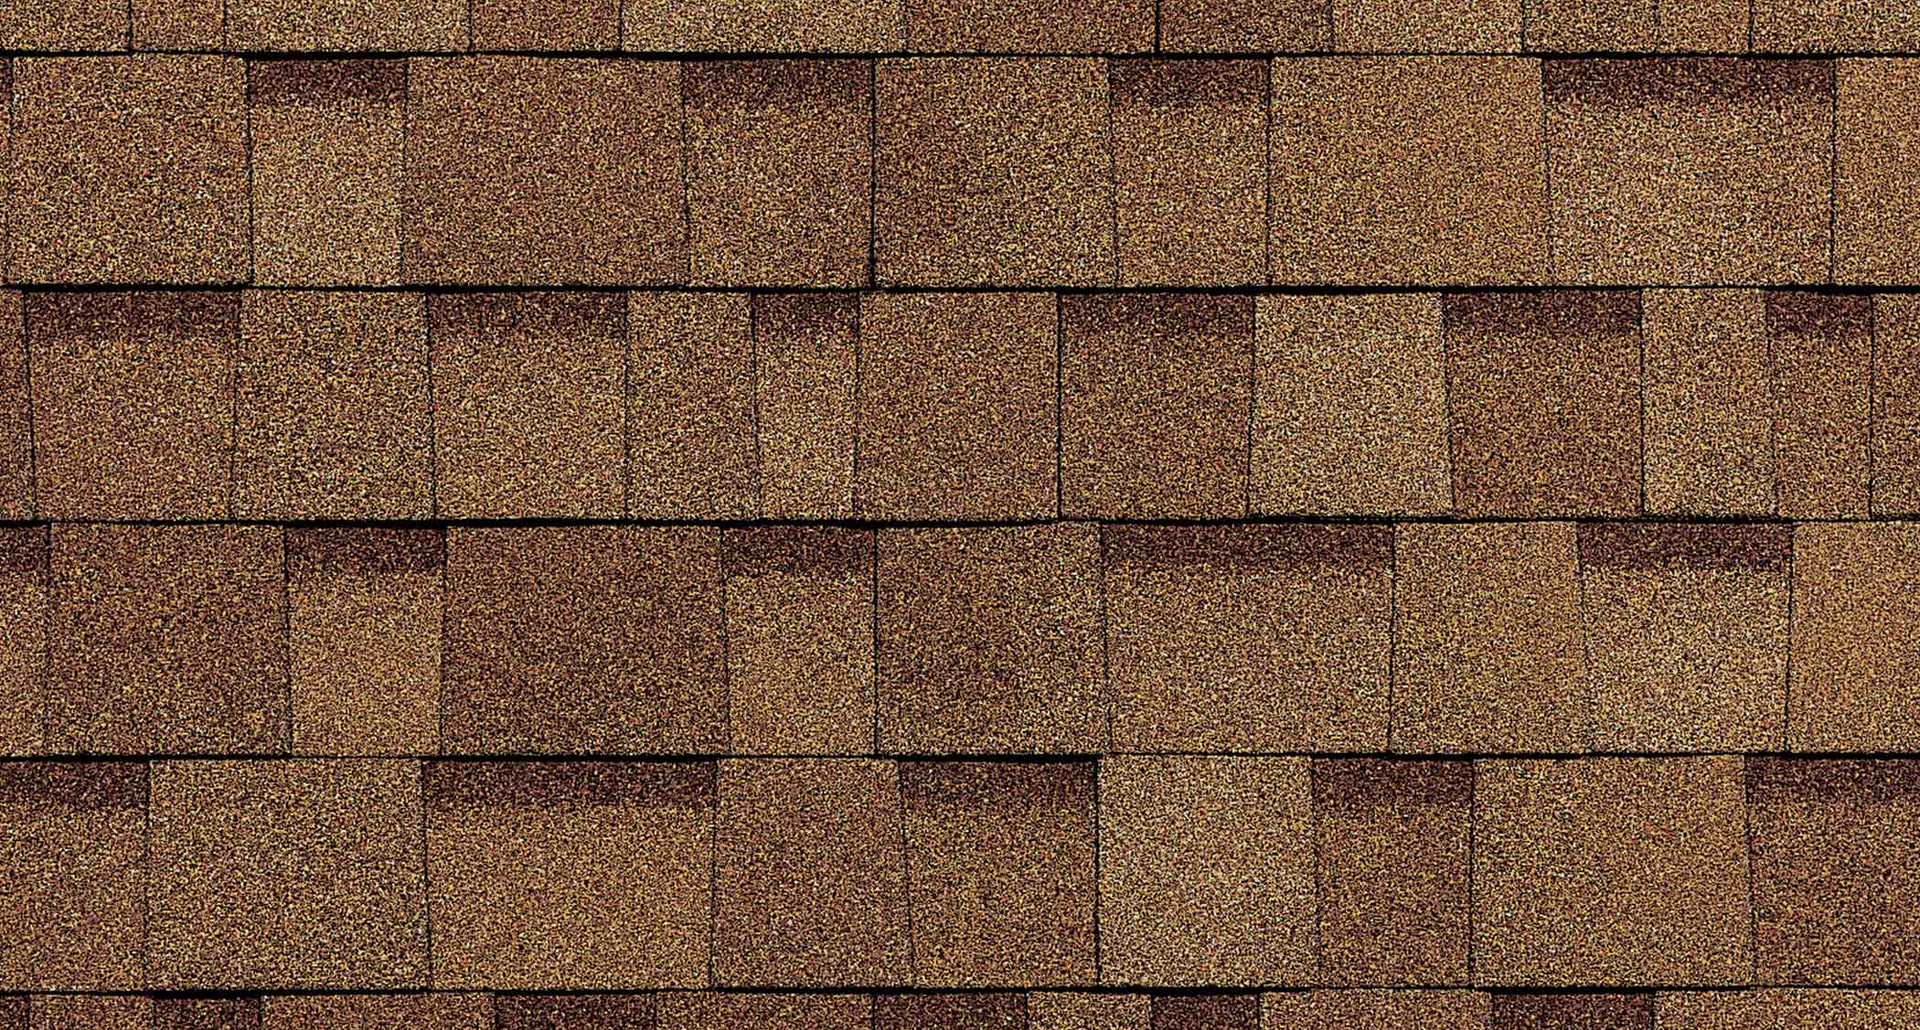 Owens Corning OakRidge Desert Tan